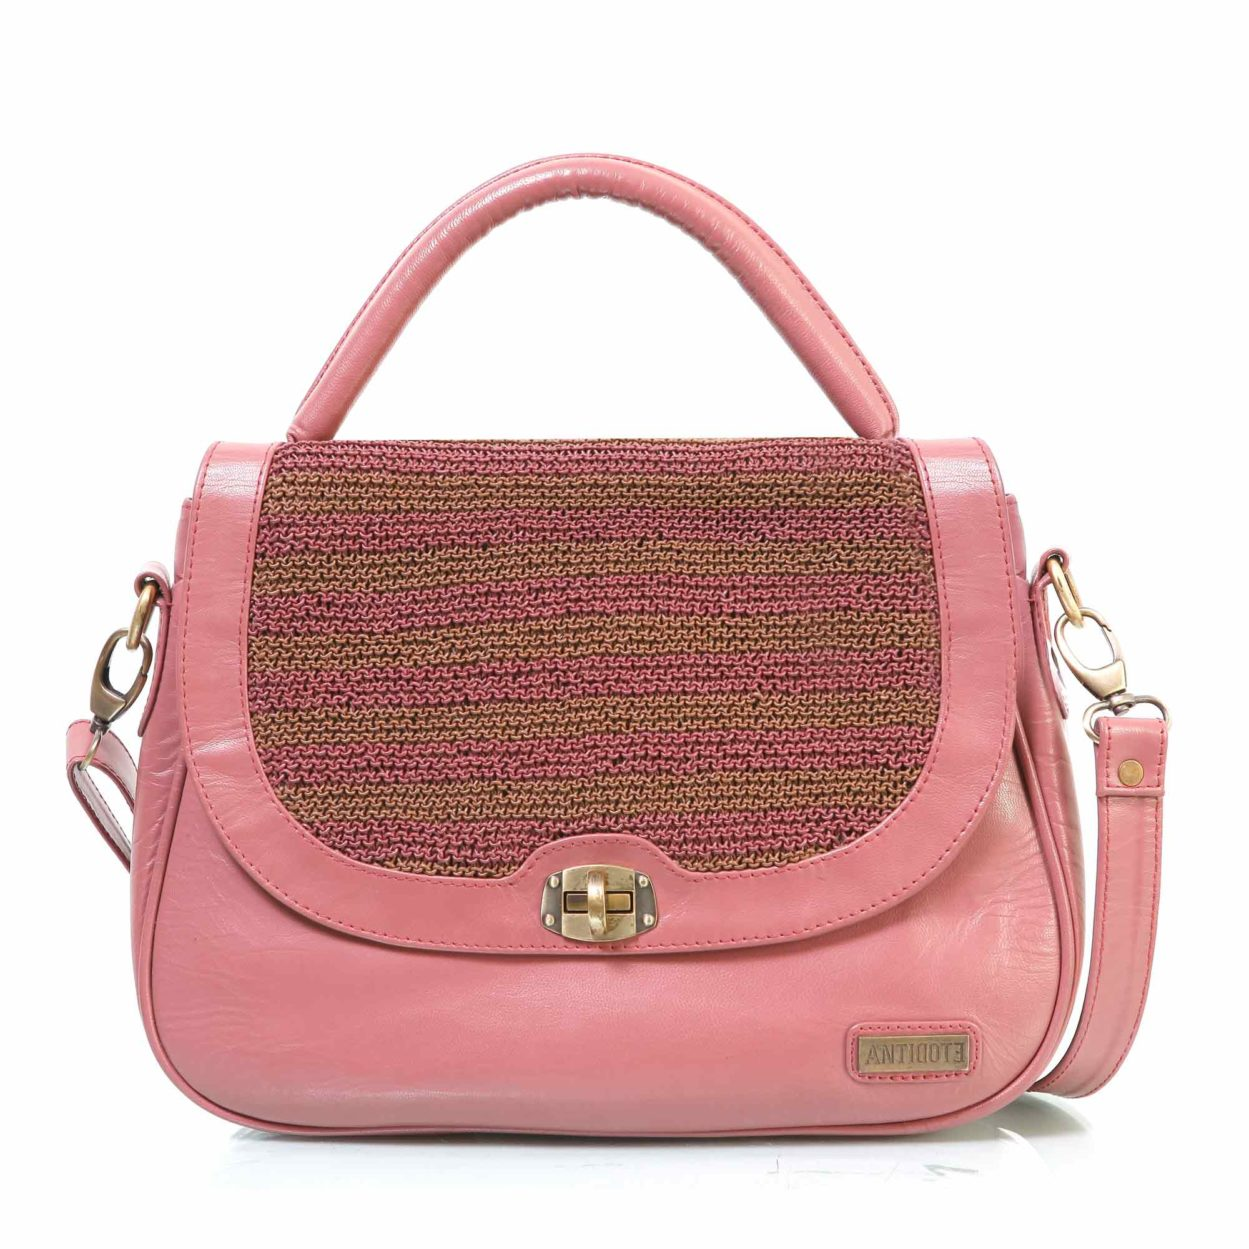 Fuschia eliane leather bag